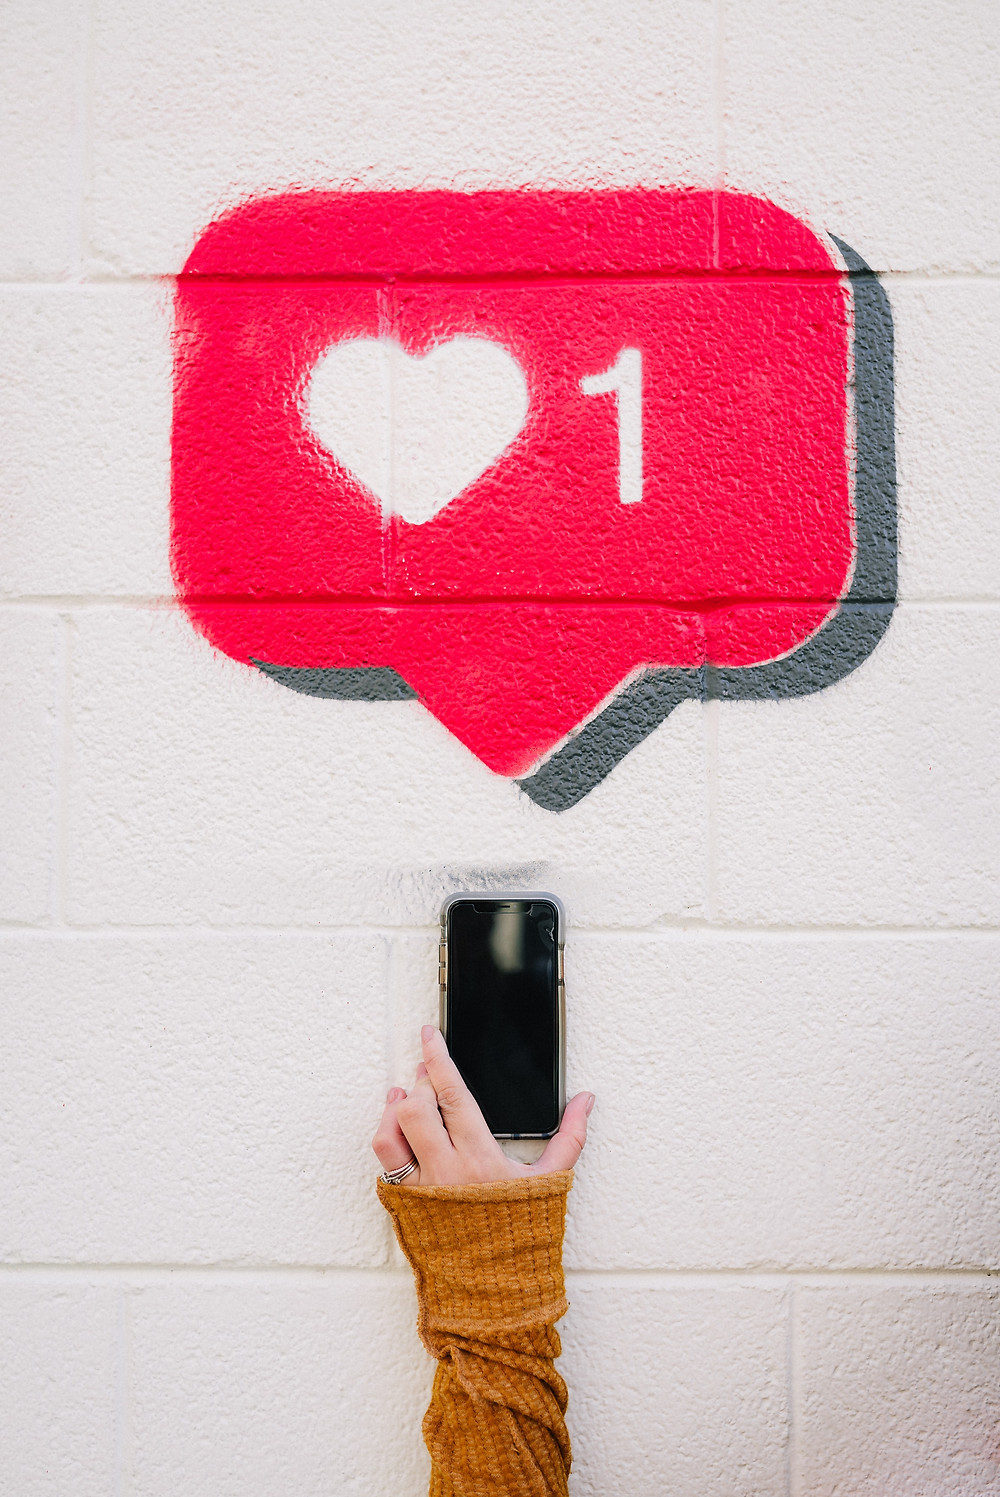 Curating a Positive Social Media Space | The Chirp by Byrd Haus